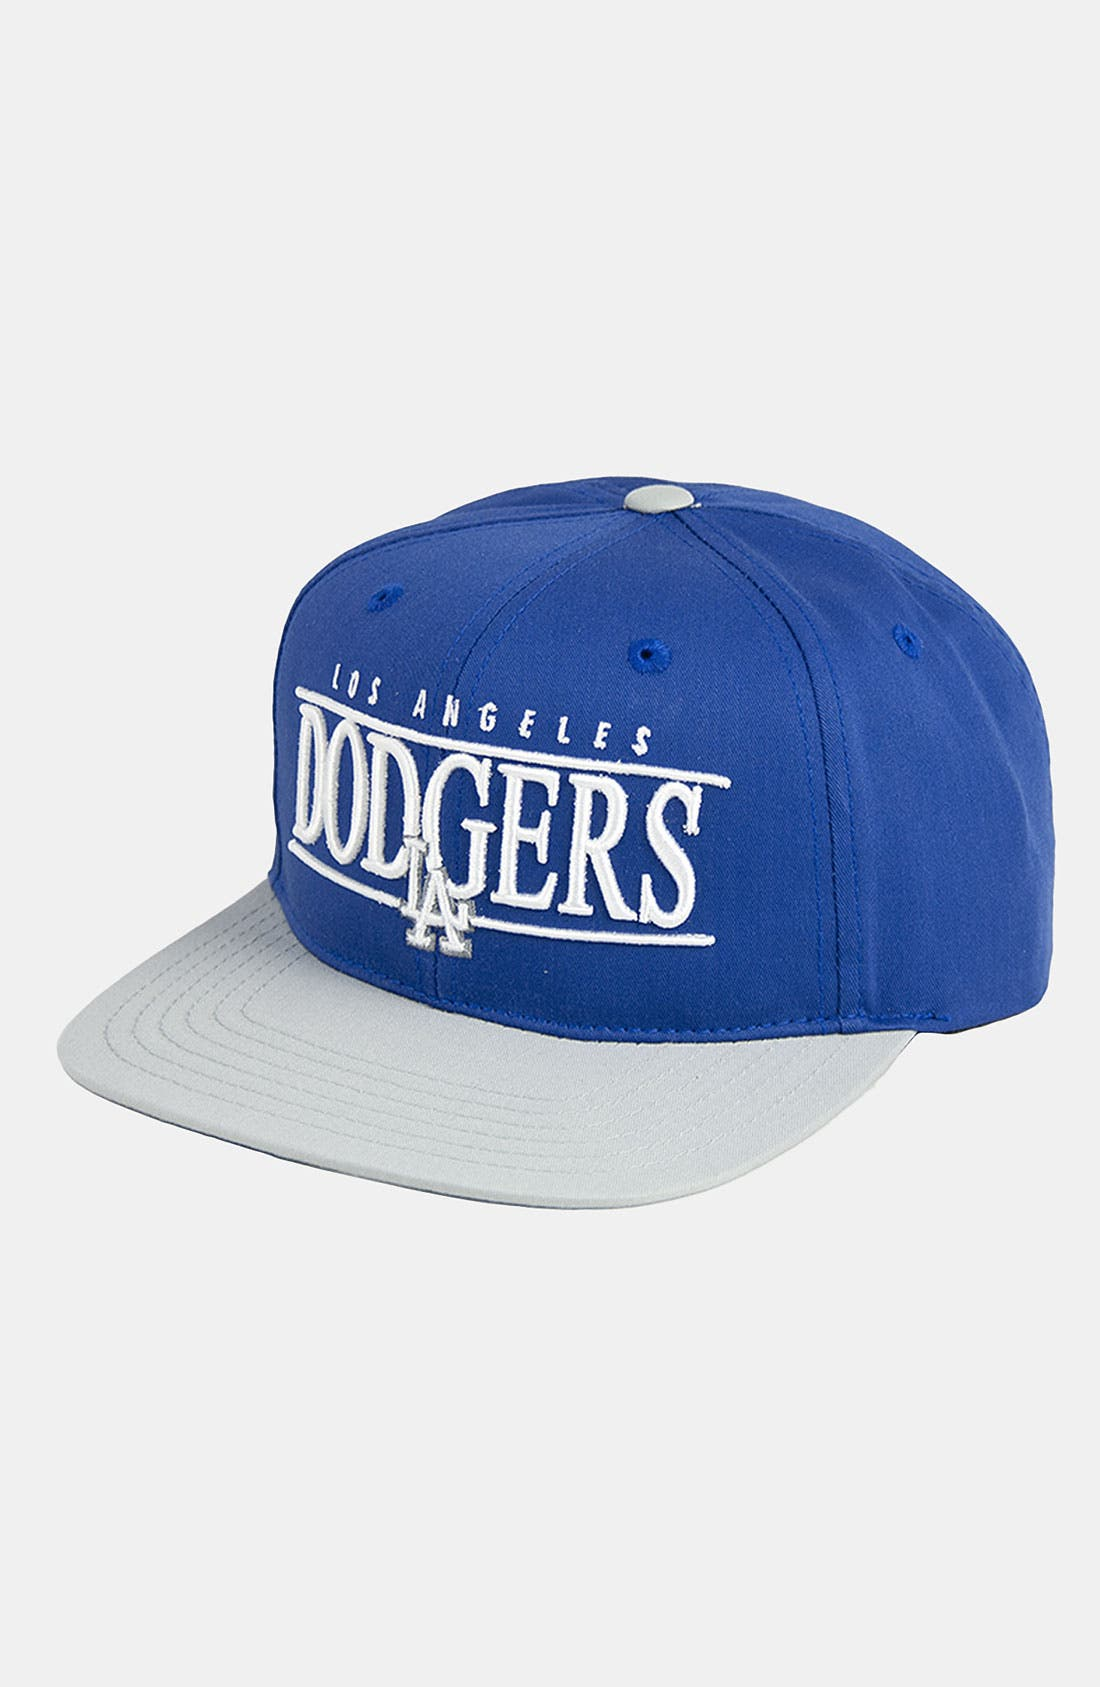 Alternate Image 1 Selected - American Needle 'Los Angeles Dodgers - Nineties' Twill Snapback Baseball Cap